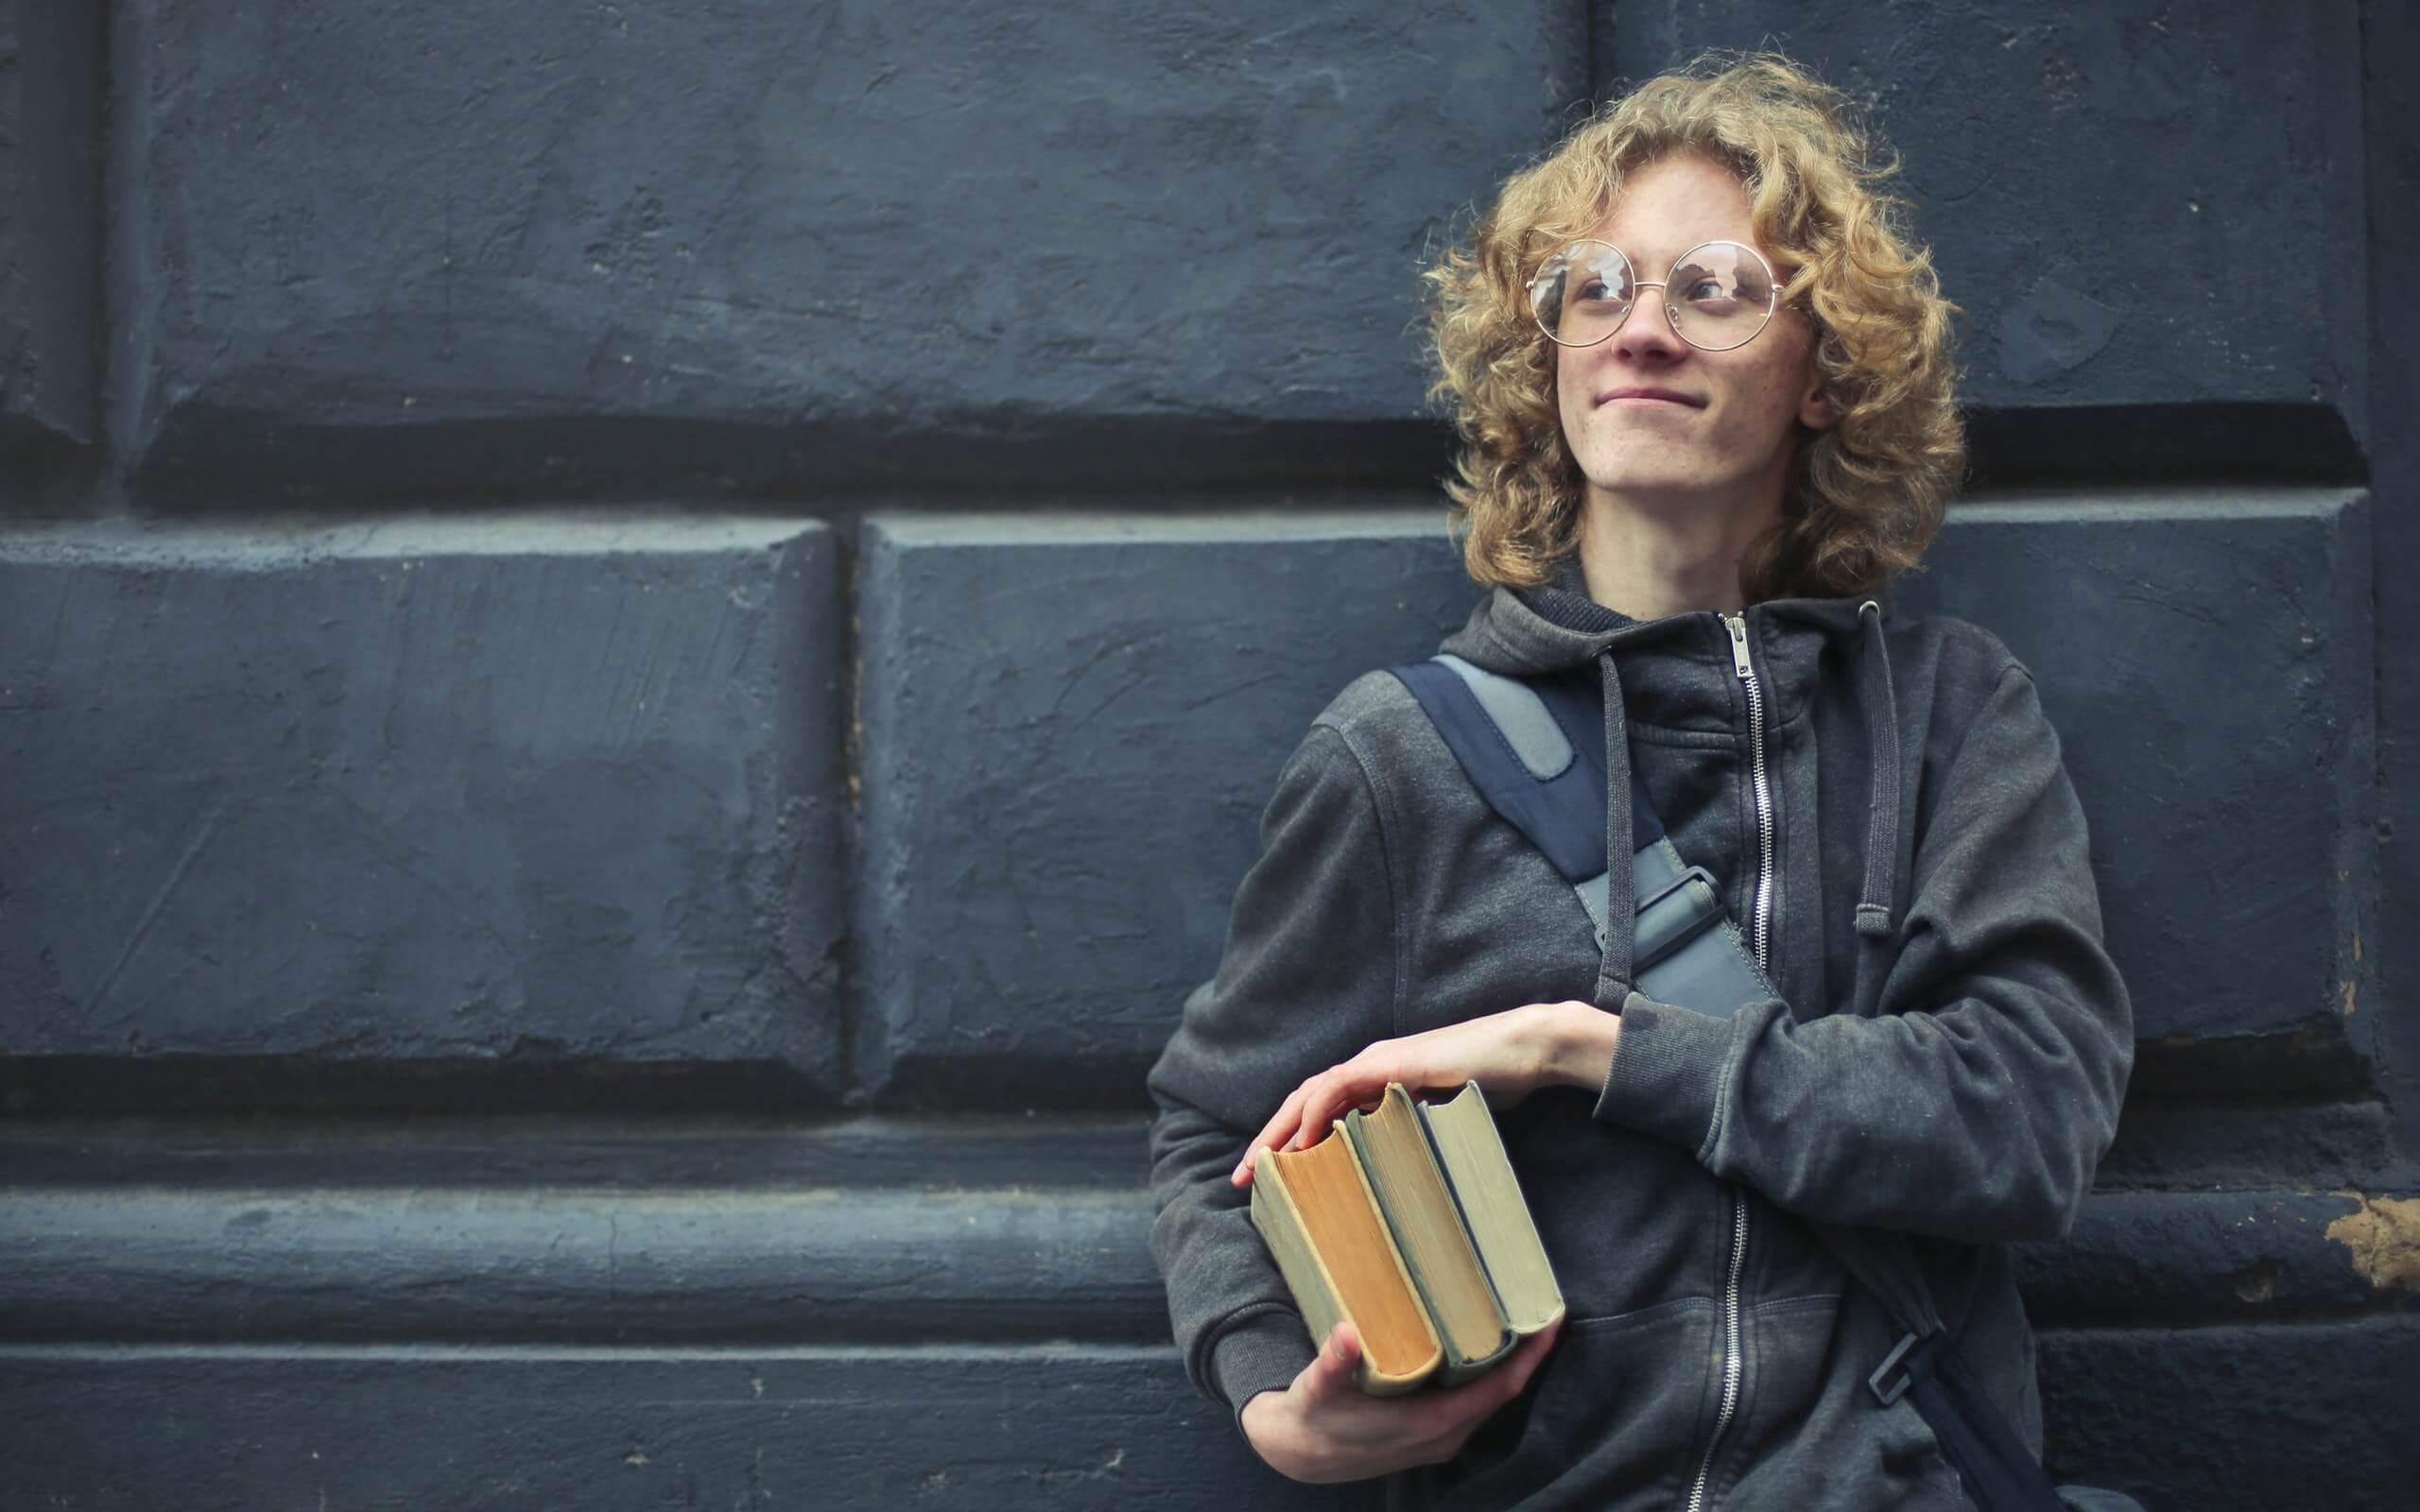 Young man leaning against a wall holding books